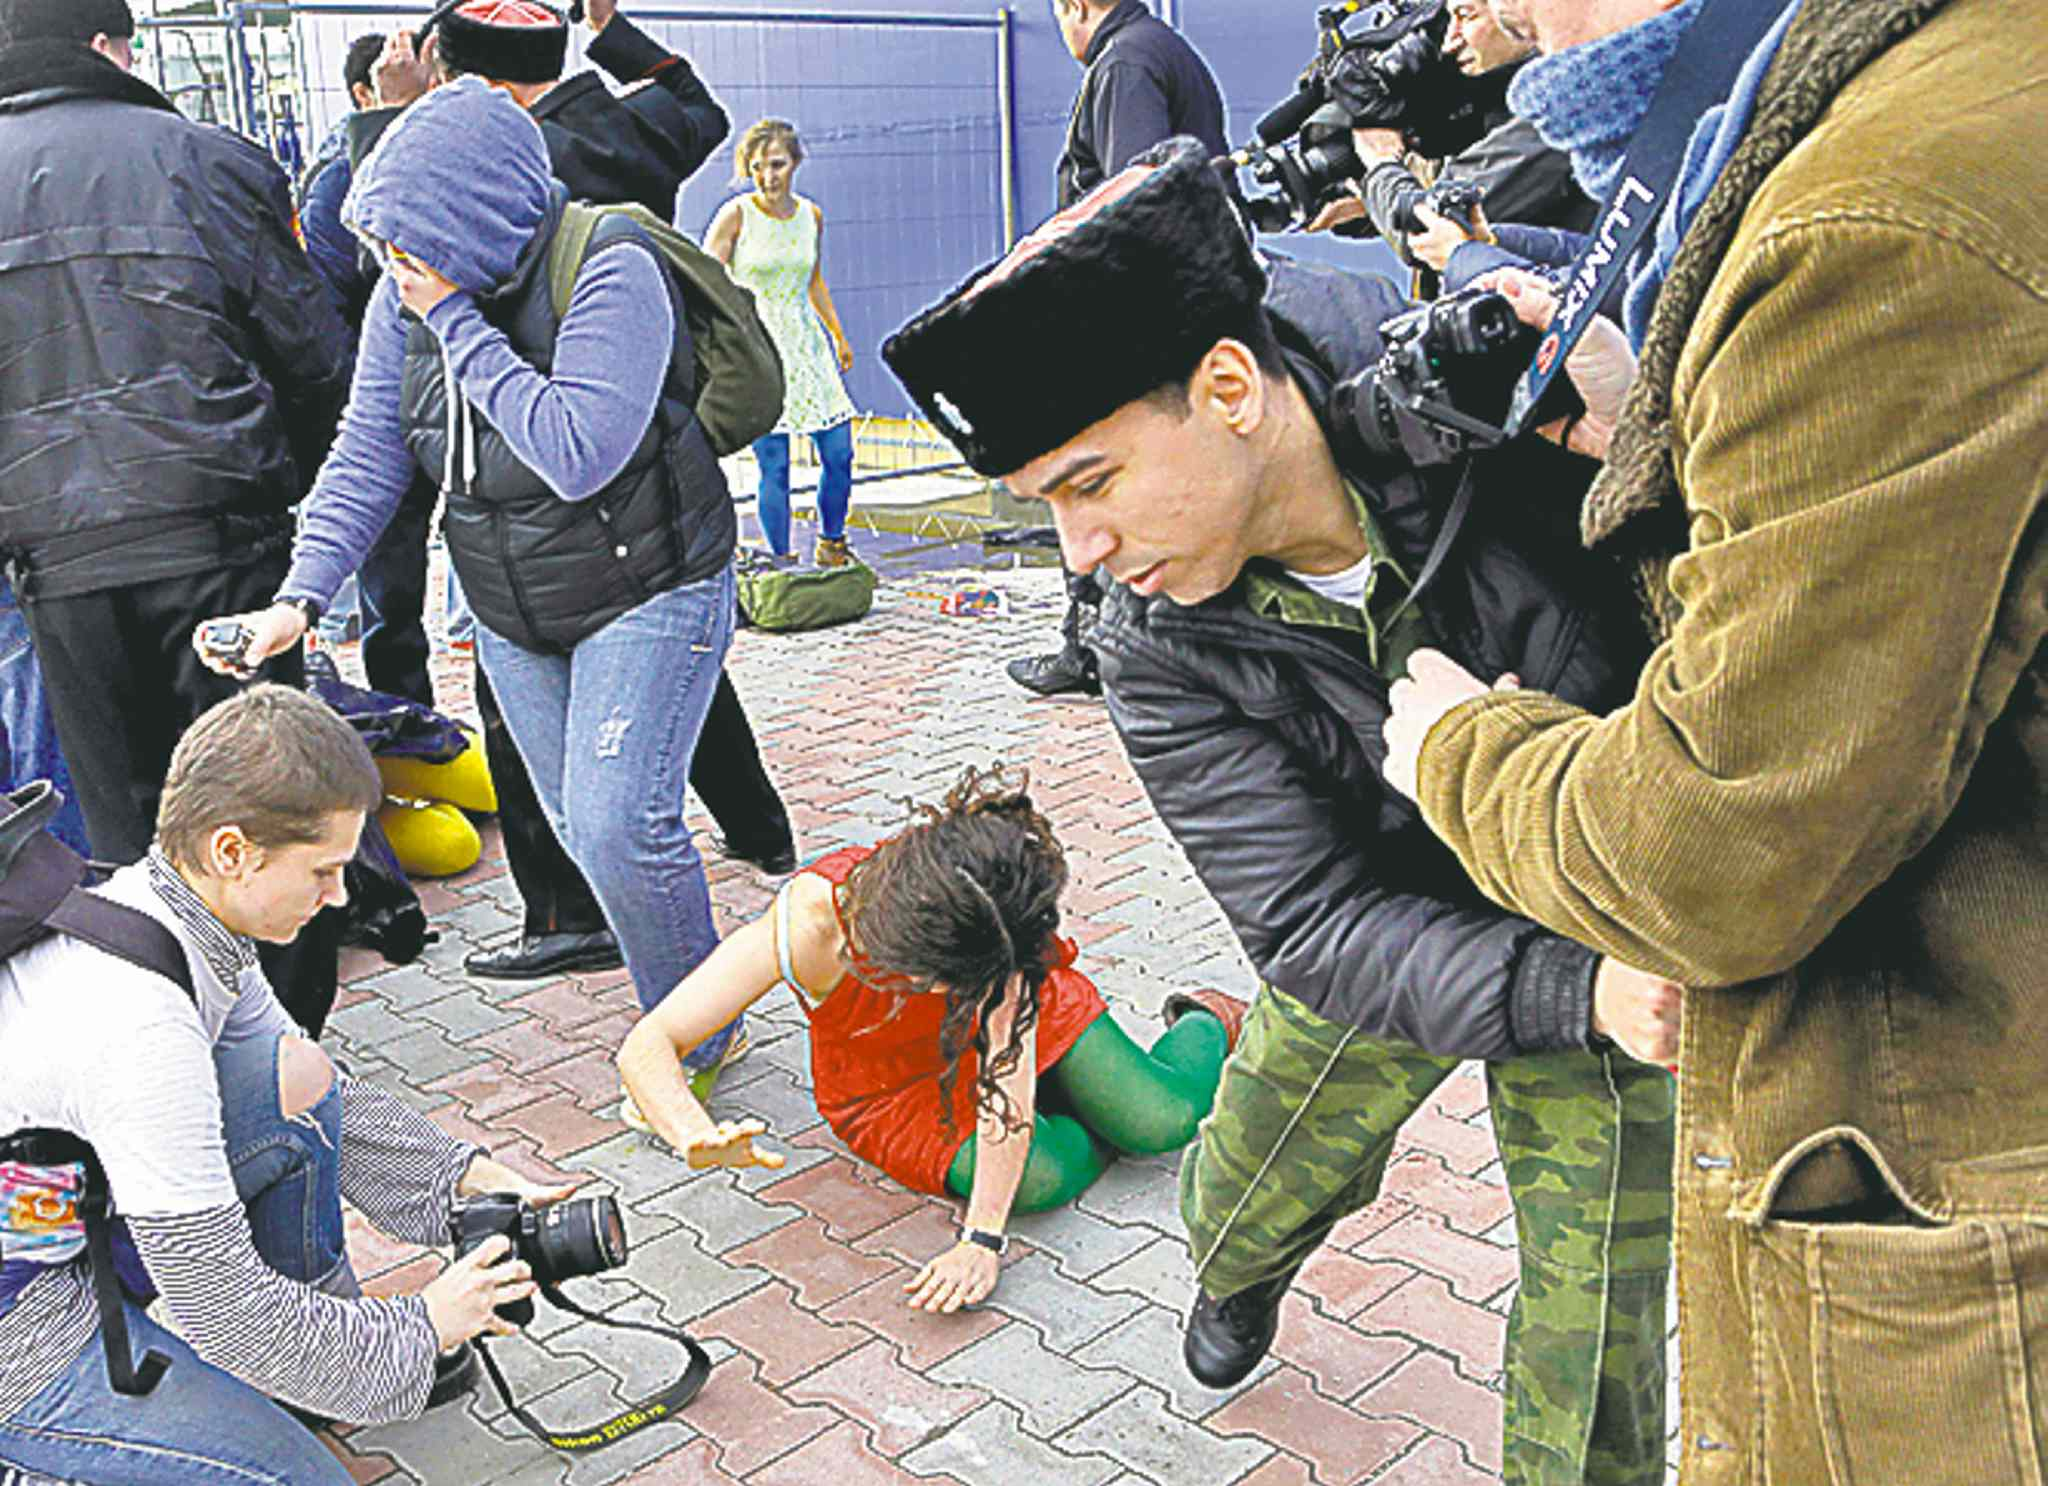 The Cossack who attacked Pussy Riot in Sochi was fined 02.20.2014 20